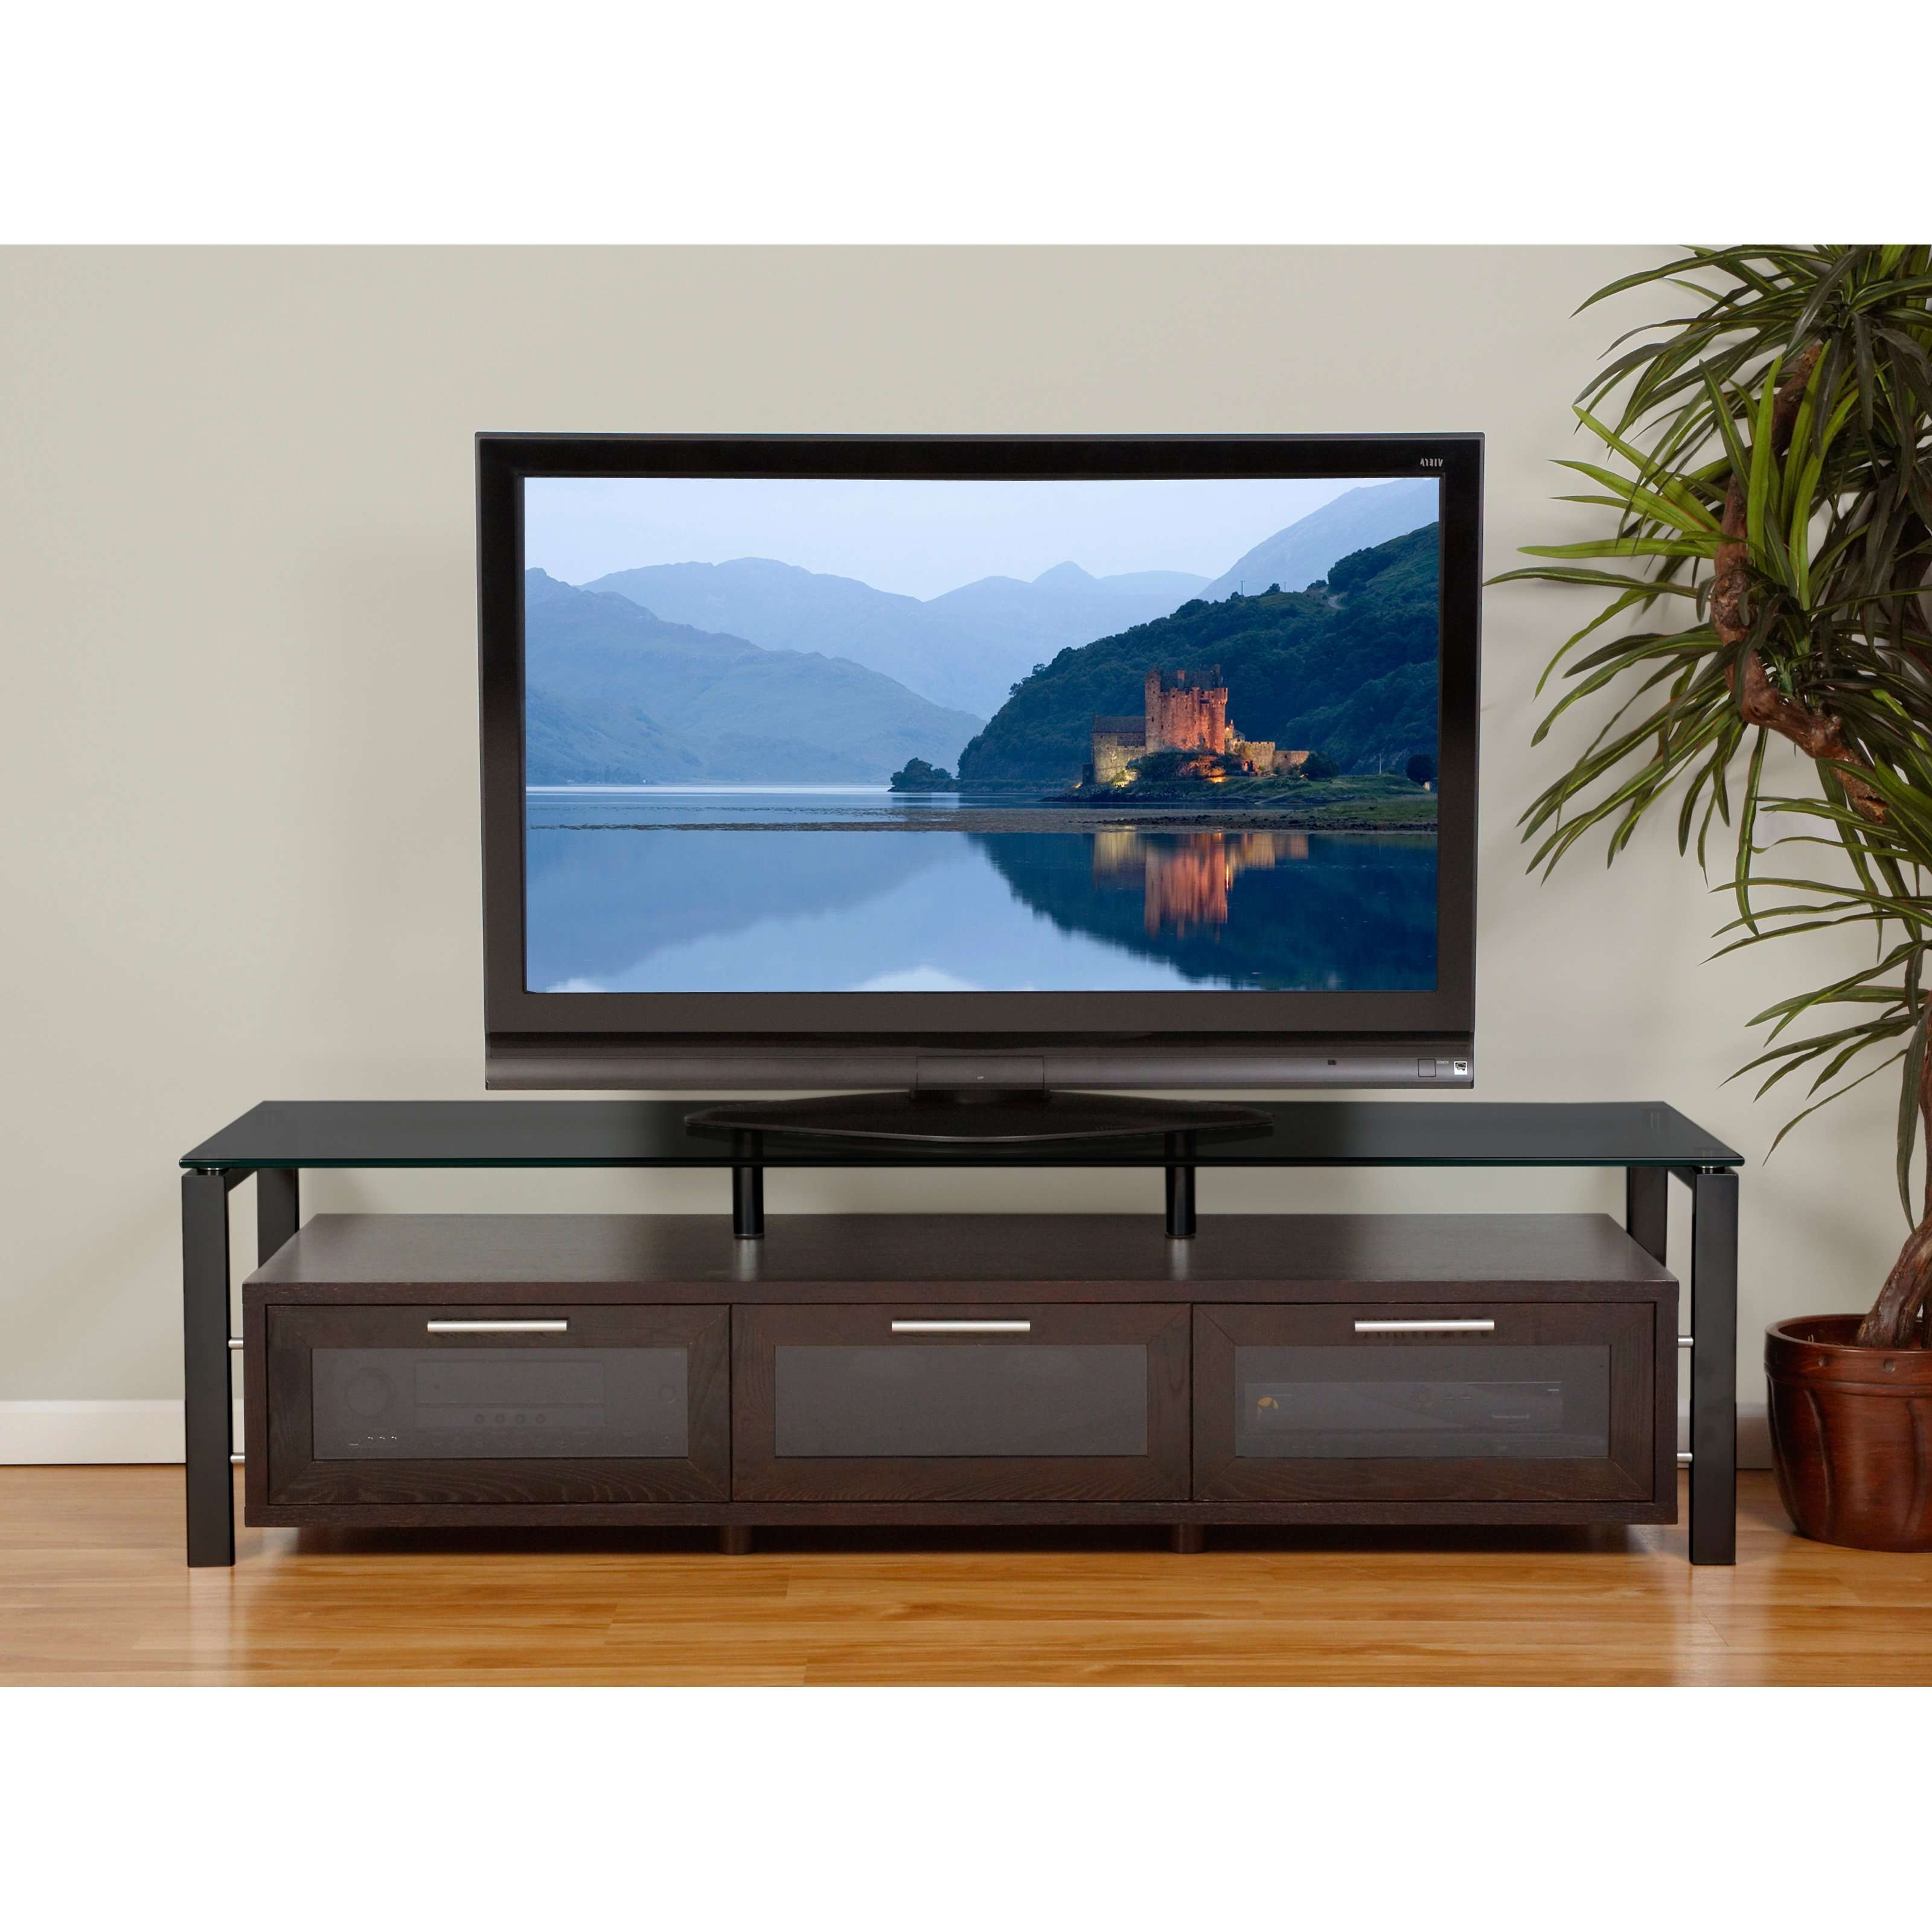 Jolly Tile Then Espresso Tv Stands Espresso Tv Stand 55 Inch Inside Expresso Tv Stands (View 12 of 15)